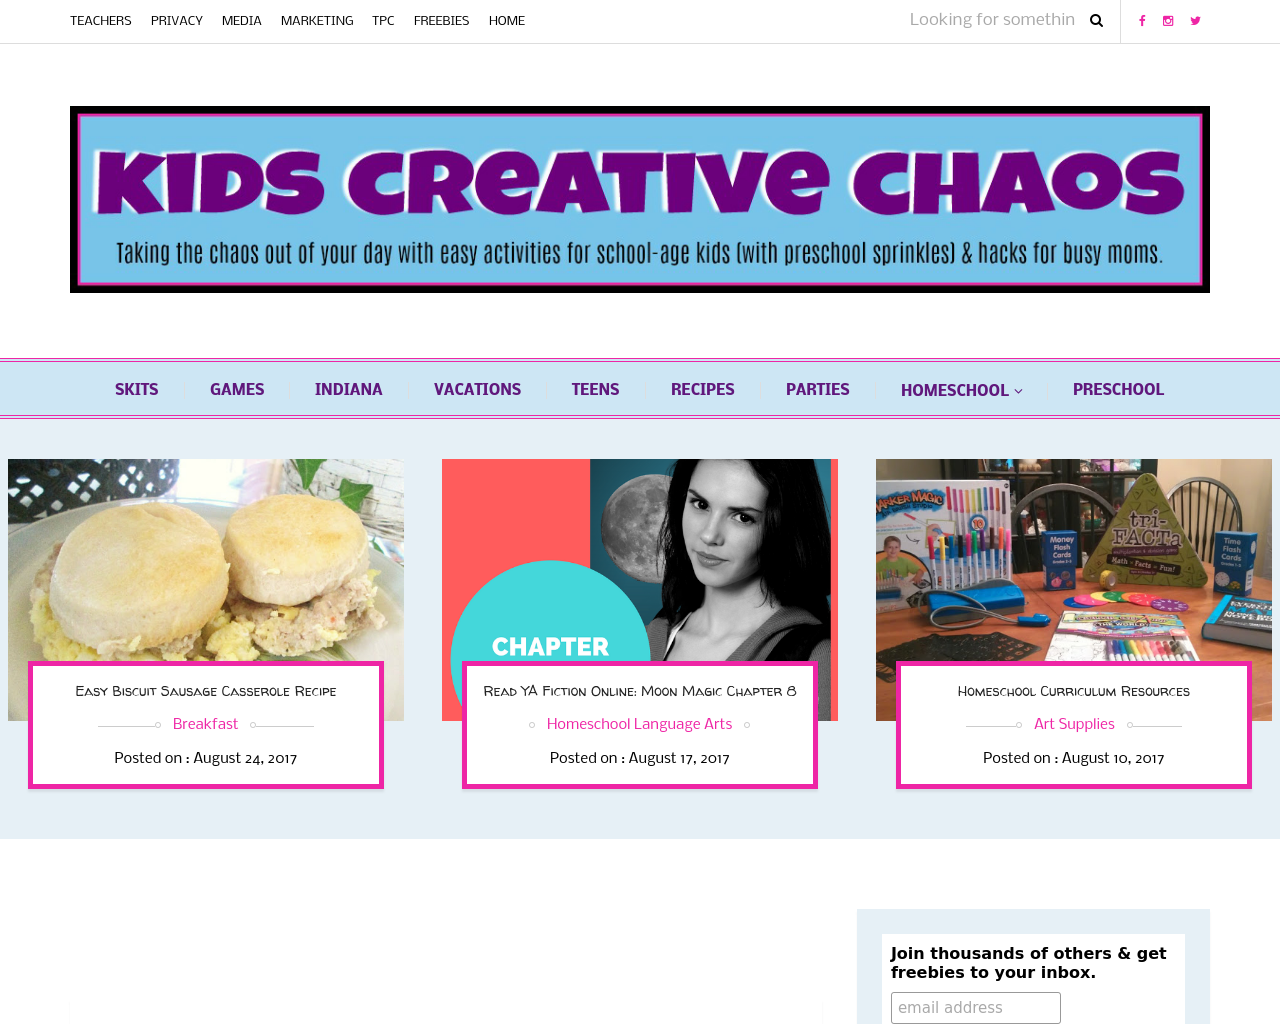 Kids-Creative-Chaos-Advertising-Reviews-Pricing